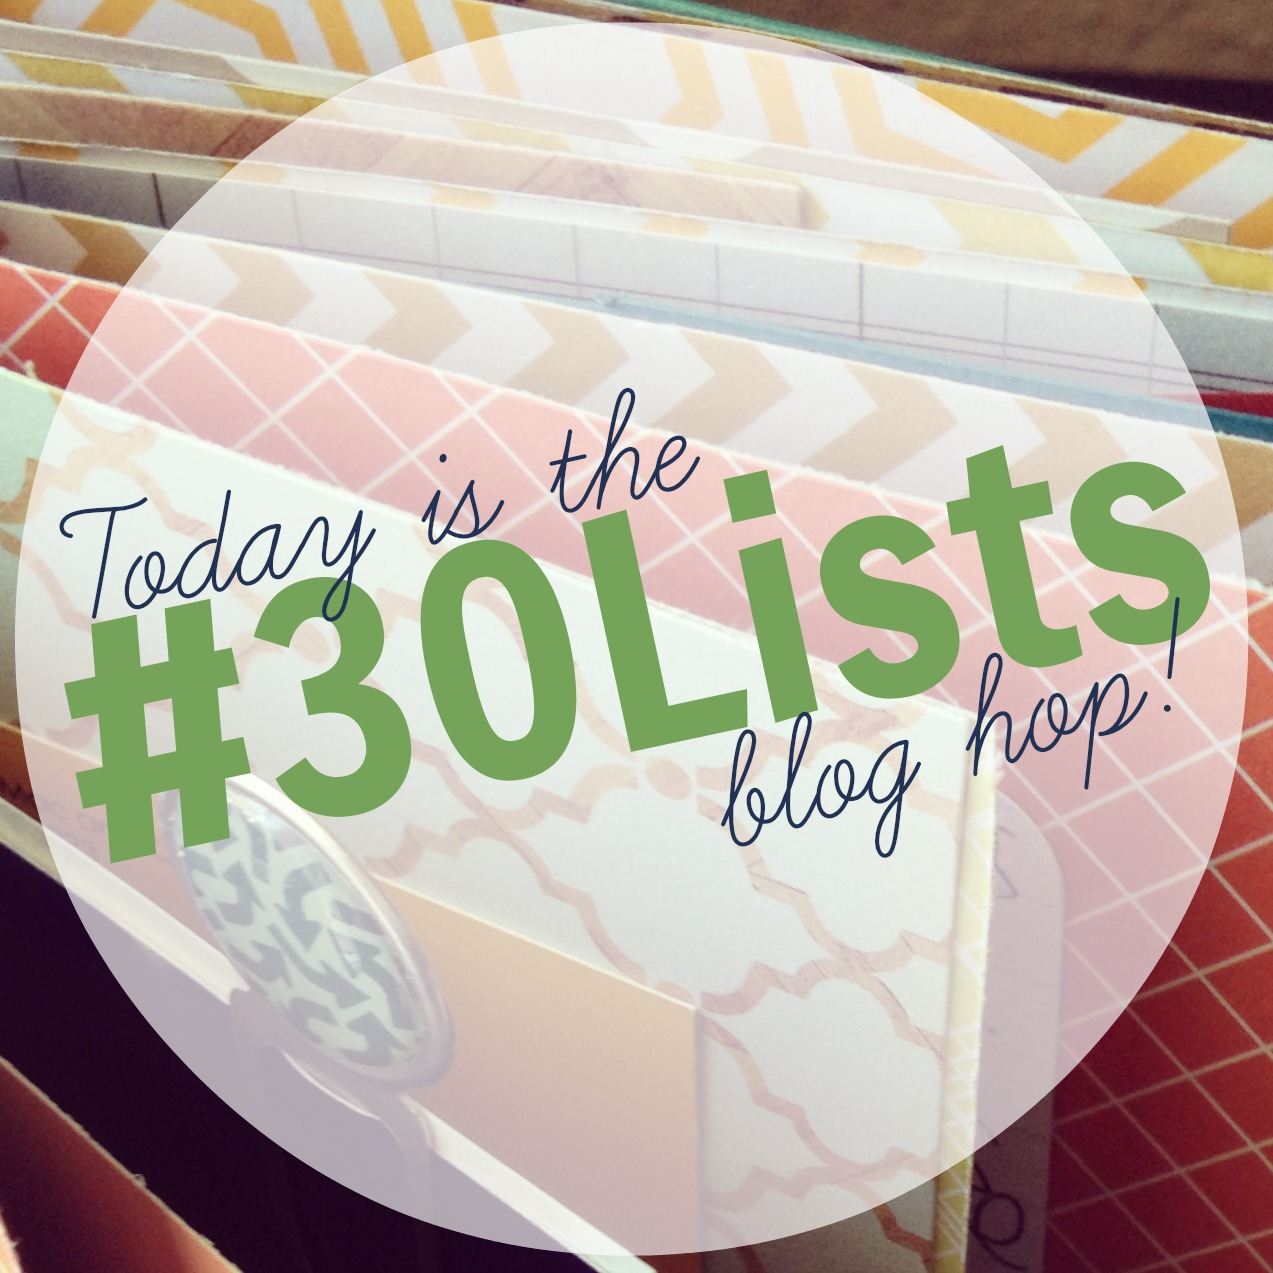 #30Lists Blog Hop